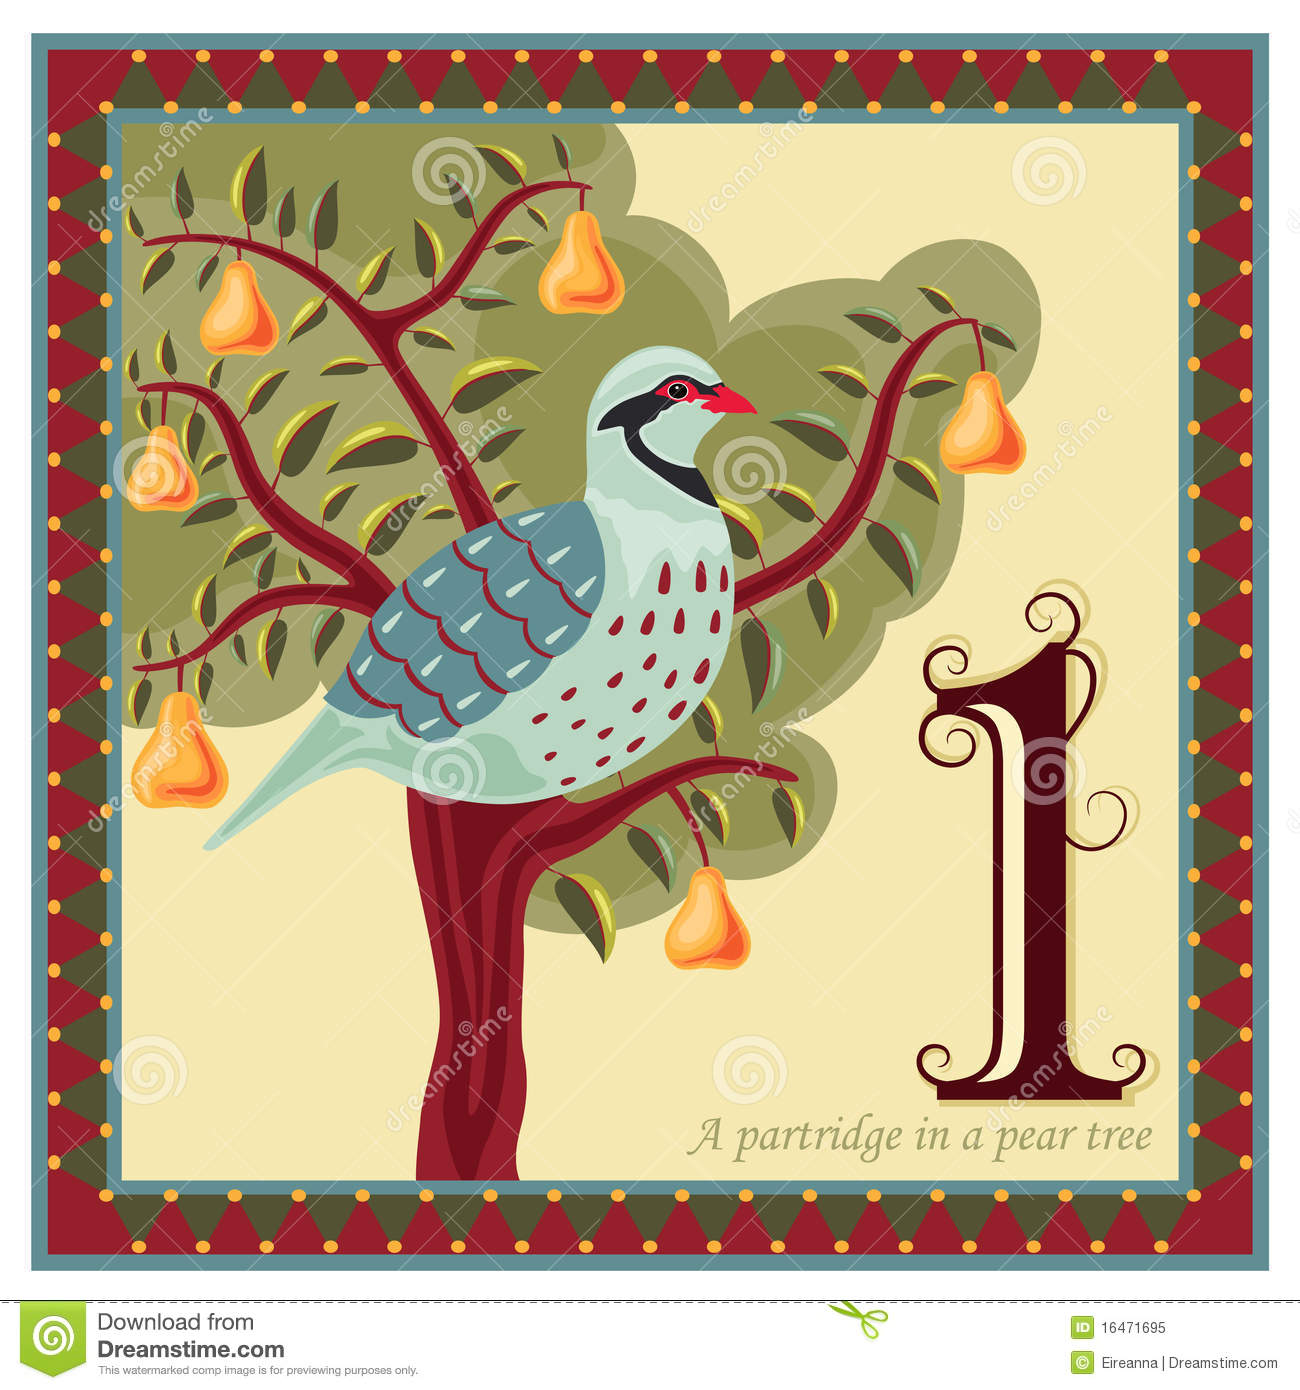 The 12 Days Of Christmas Stock Vector Illustration Of First